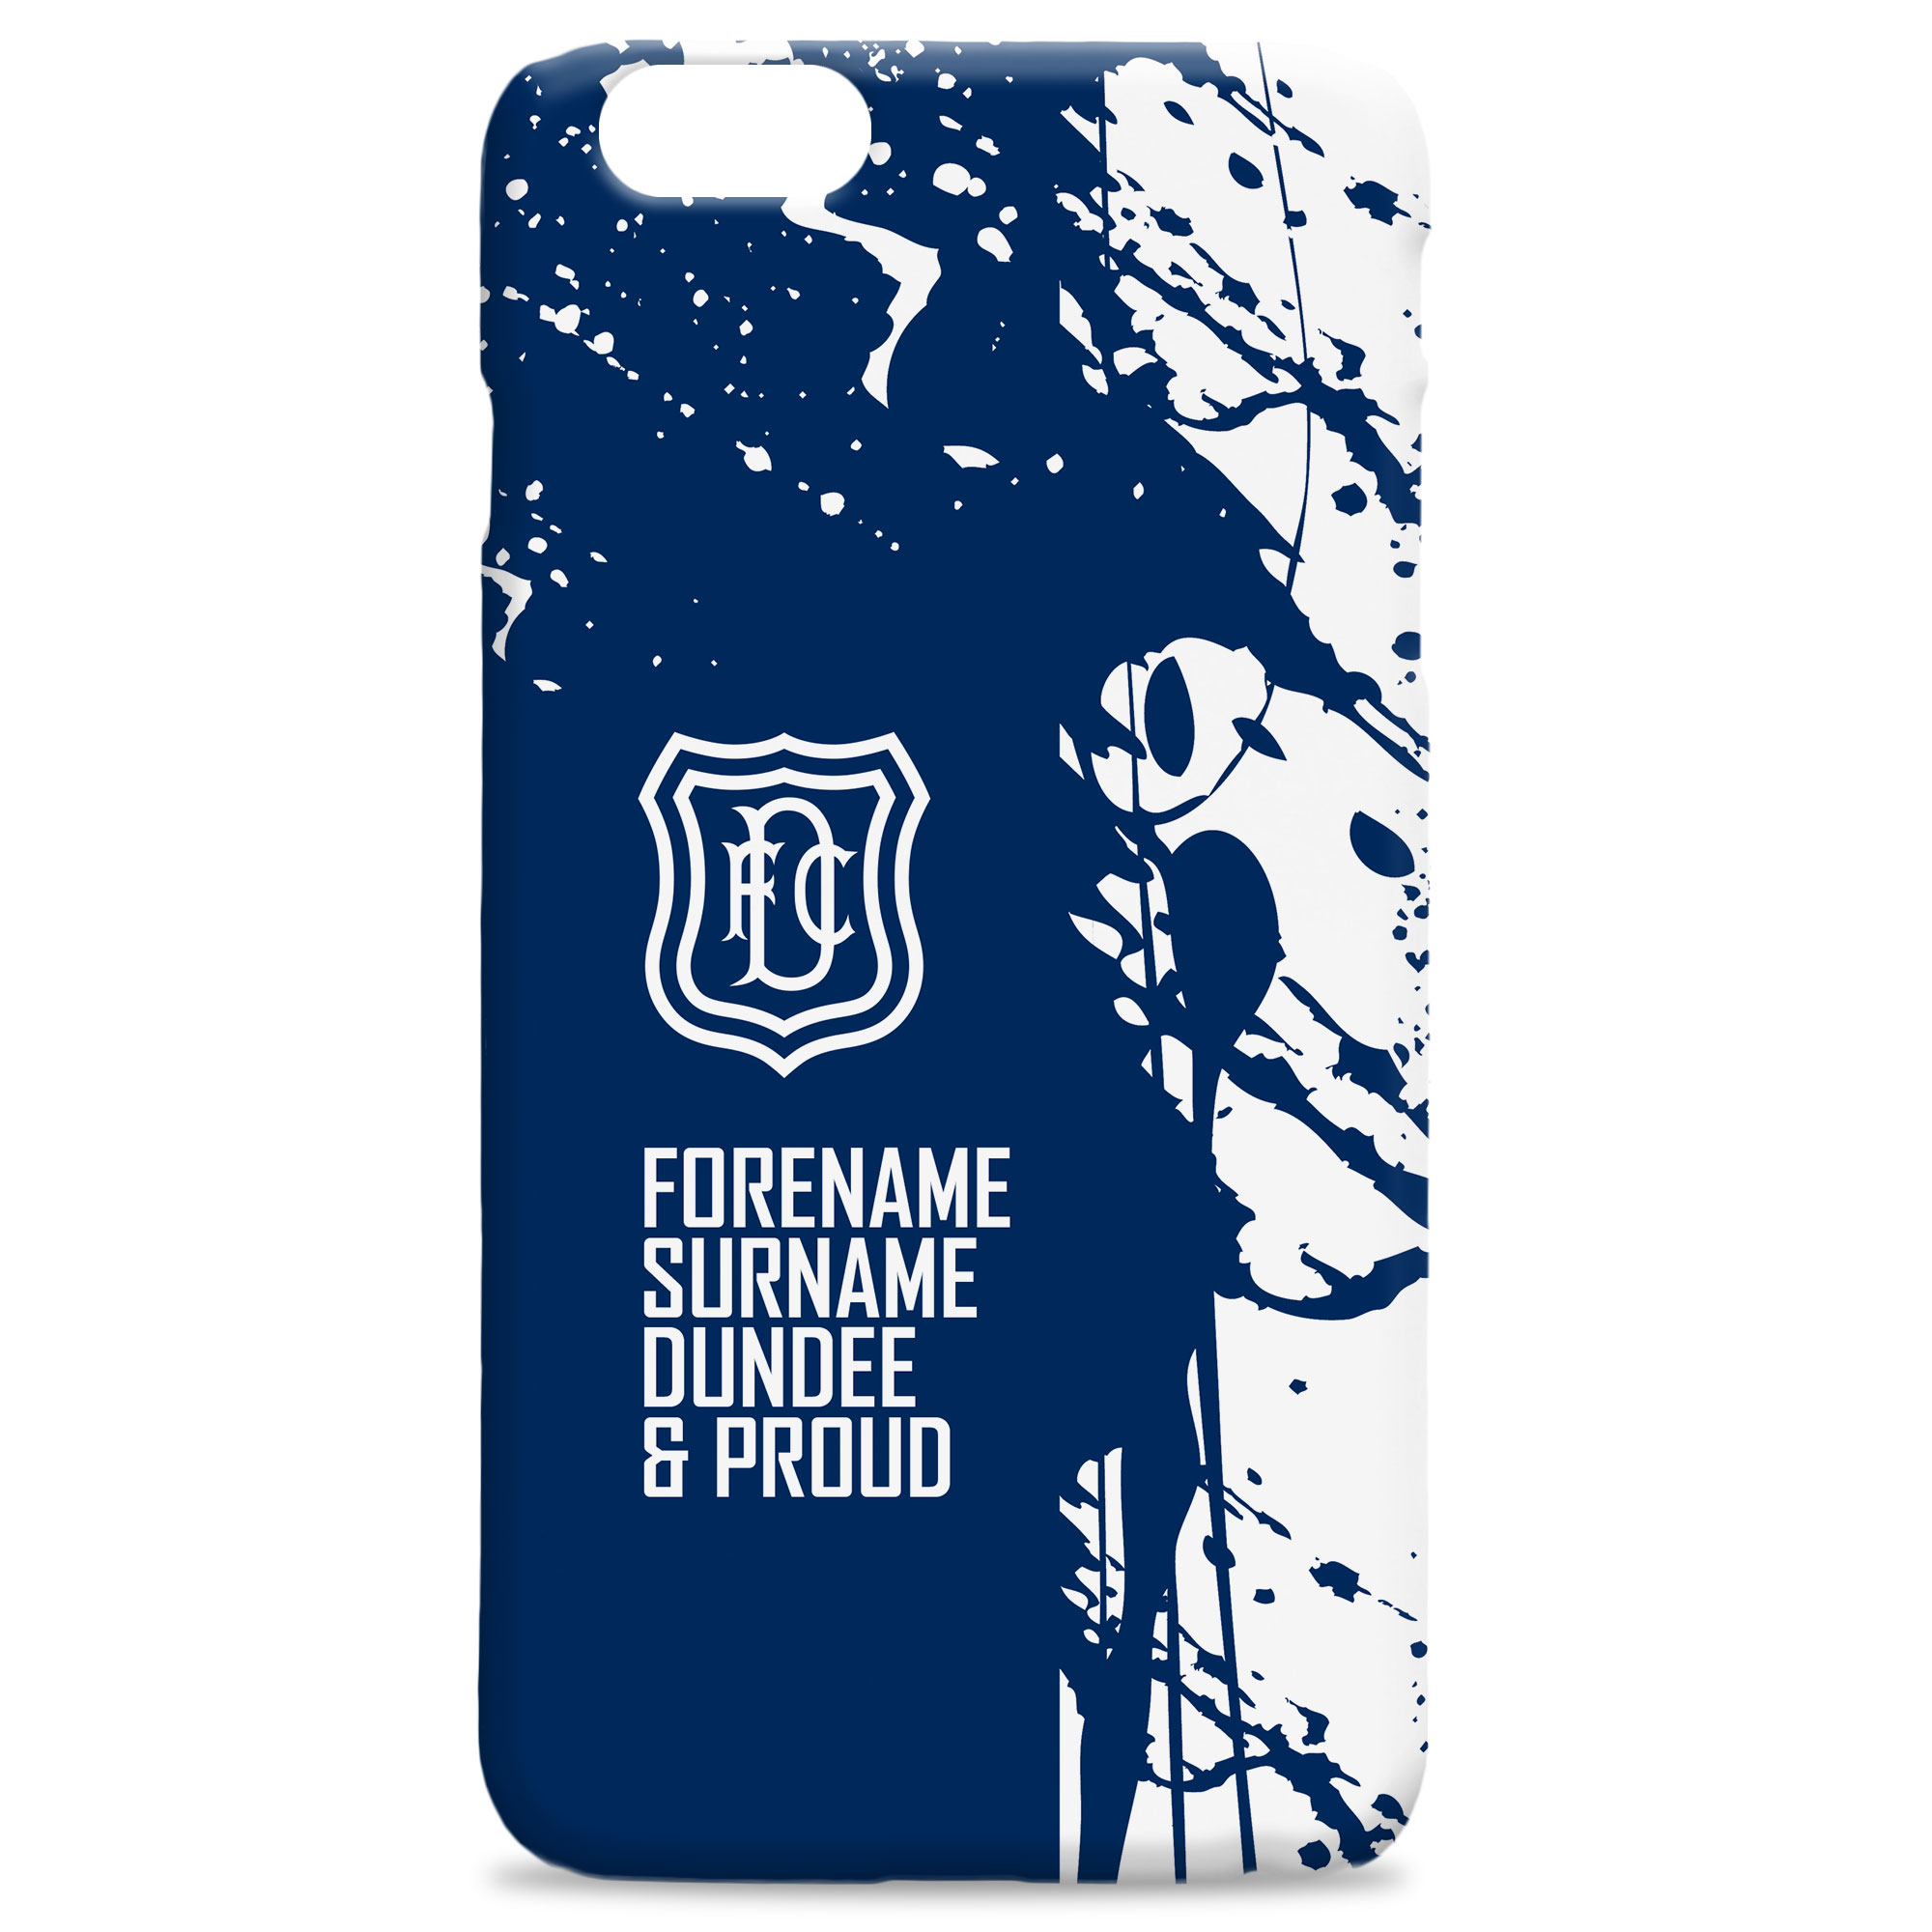 Dundee FC Proud Hard Back Phone Case